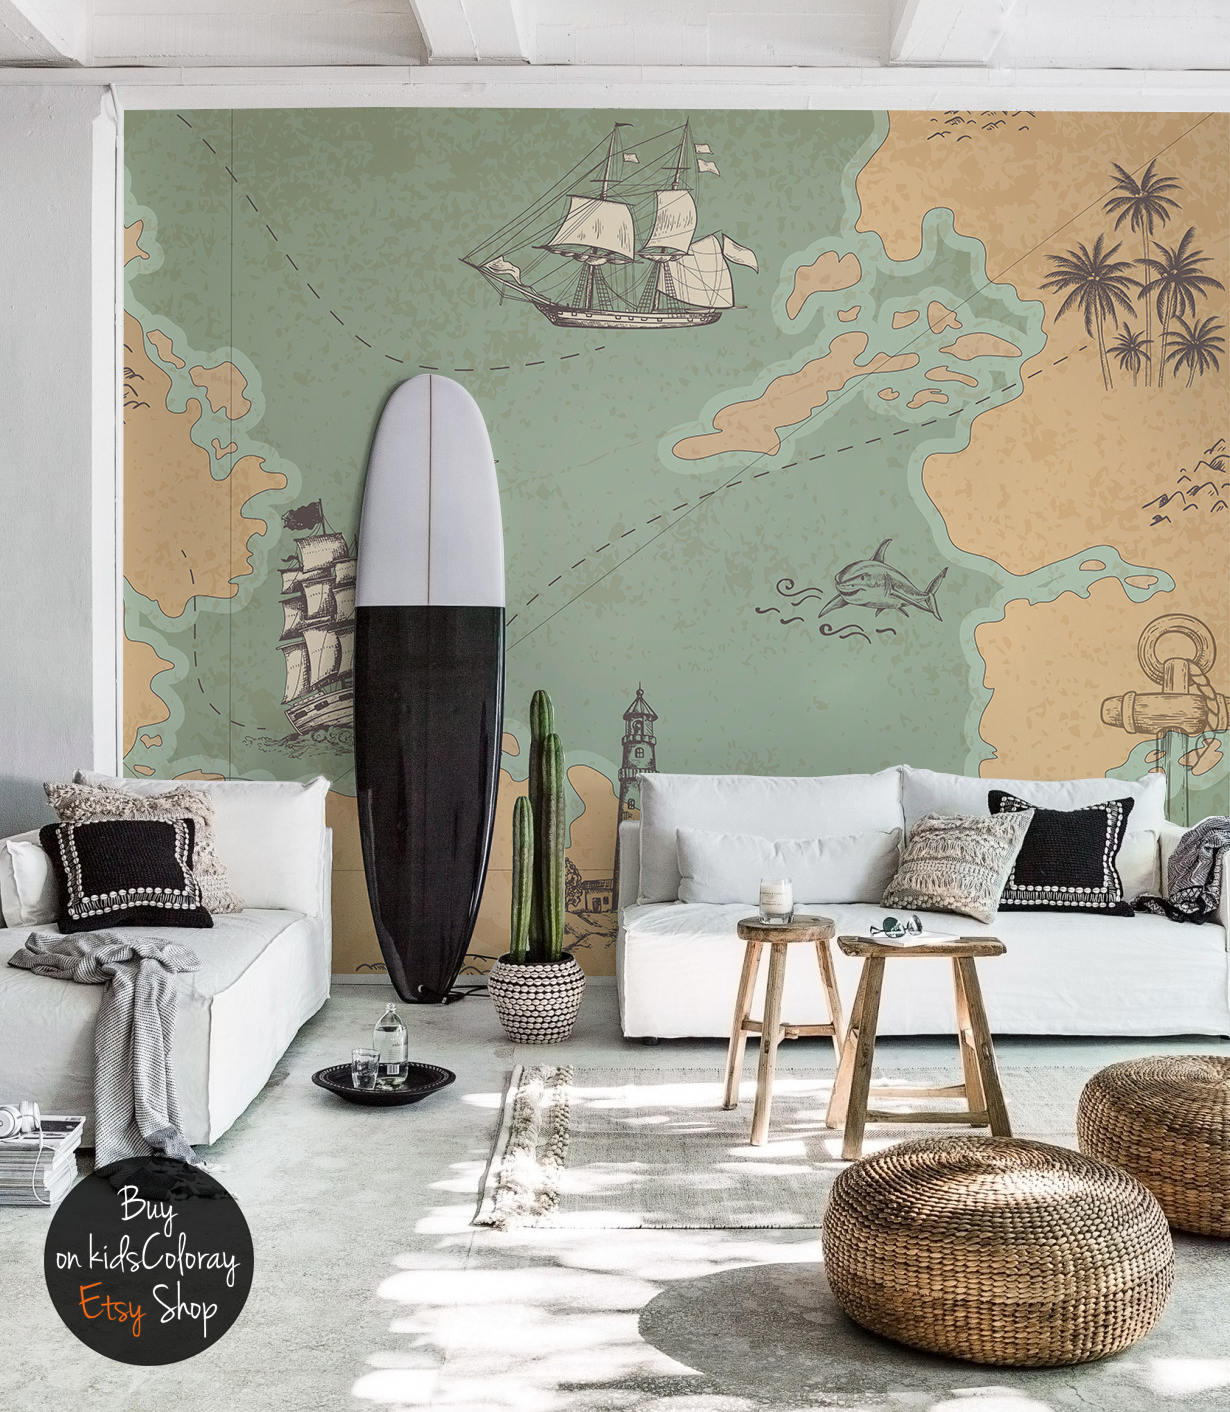 Wallpaper Murals For Bathrooms Treasure Map Wallpaper Old Marine Map Removable Wall Mural Continents Ocean Decor World Map Pattern Wall Covering Repositionable 121